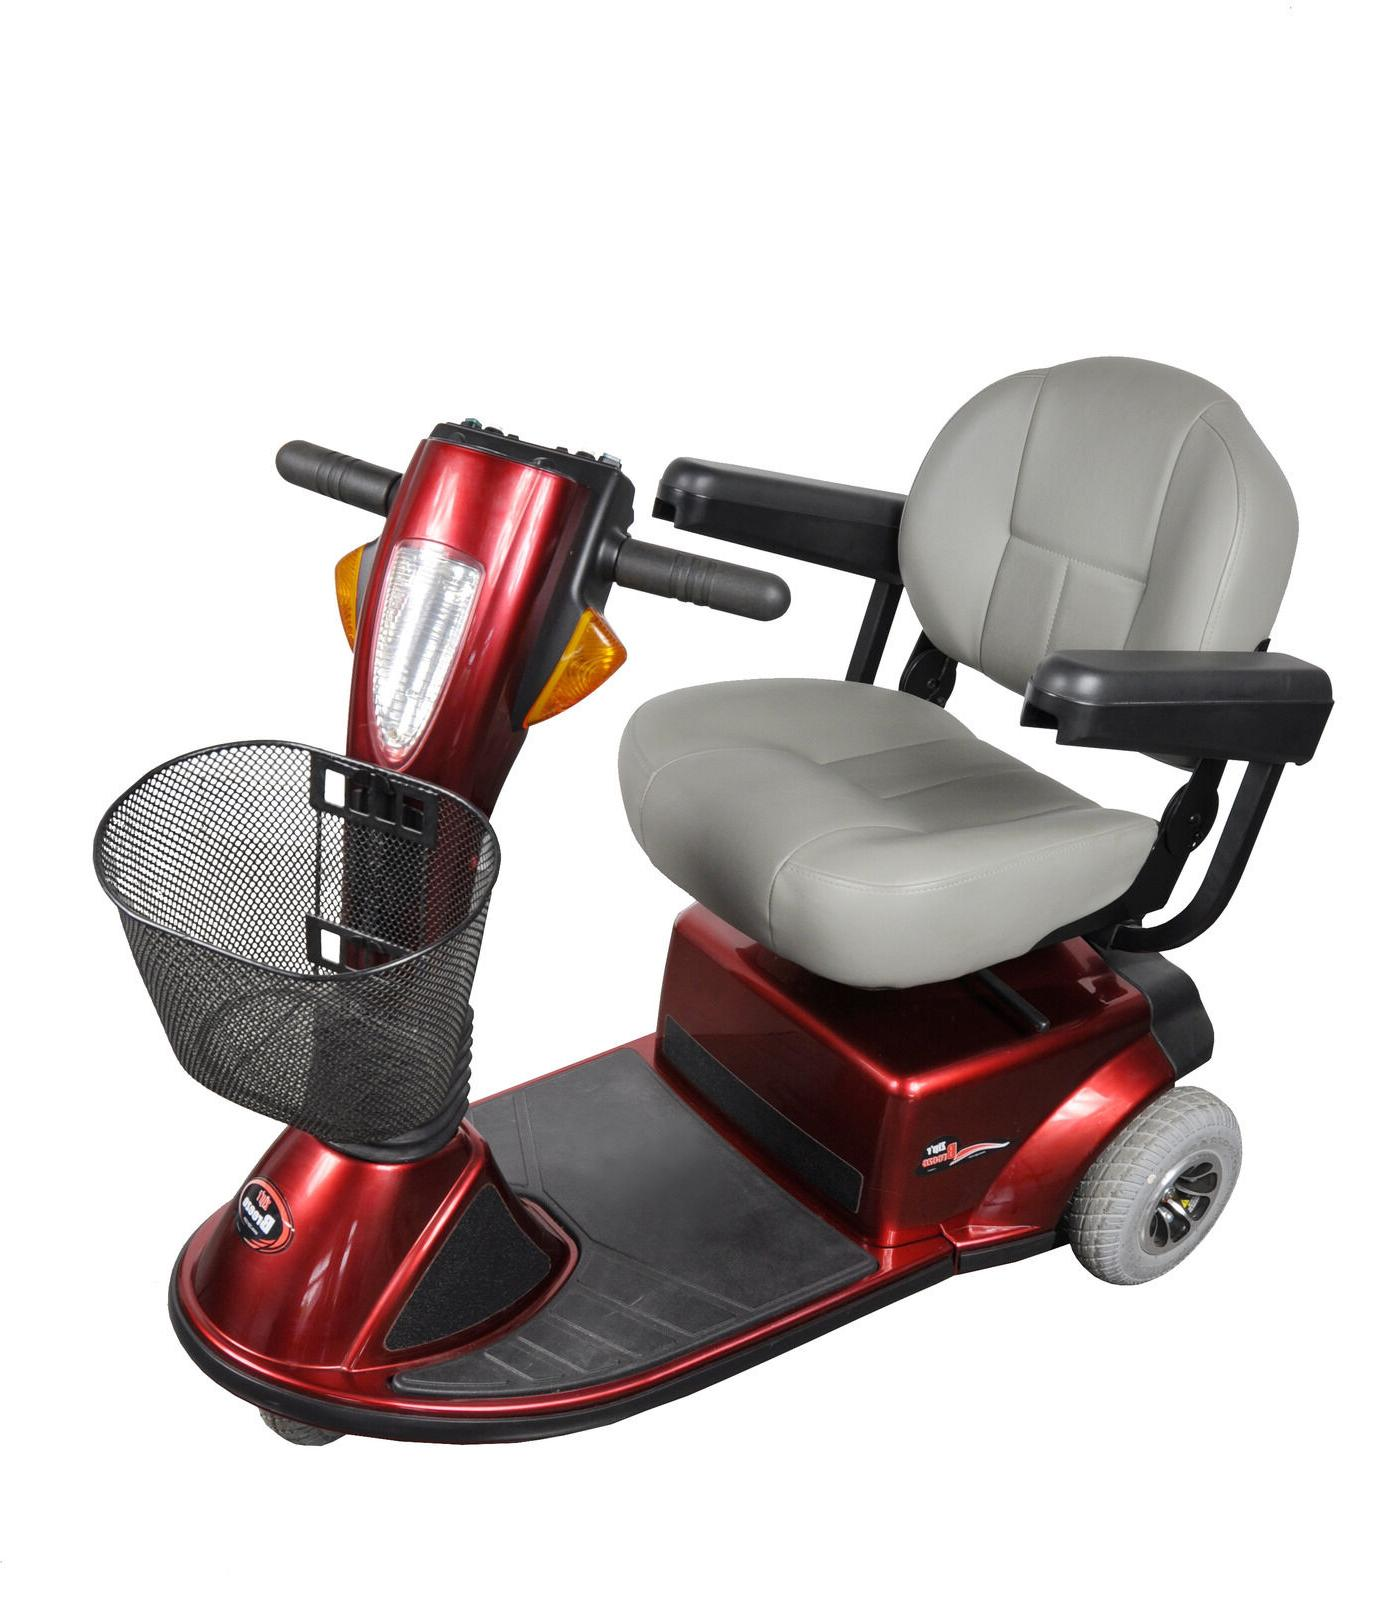 Zip'r Breeze 3-Wheel Mid Size Mobility Scooter 300 lbs Capac